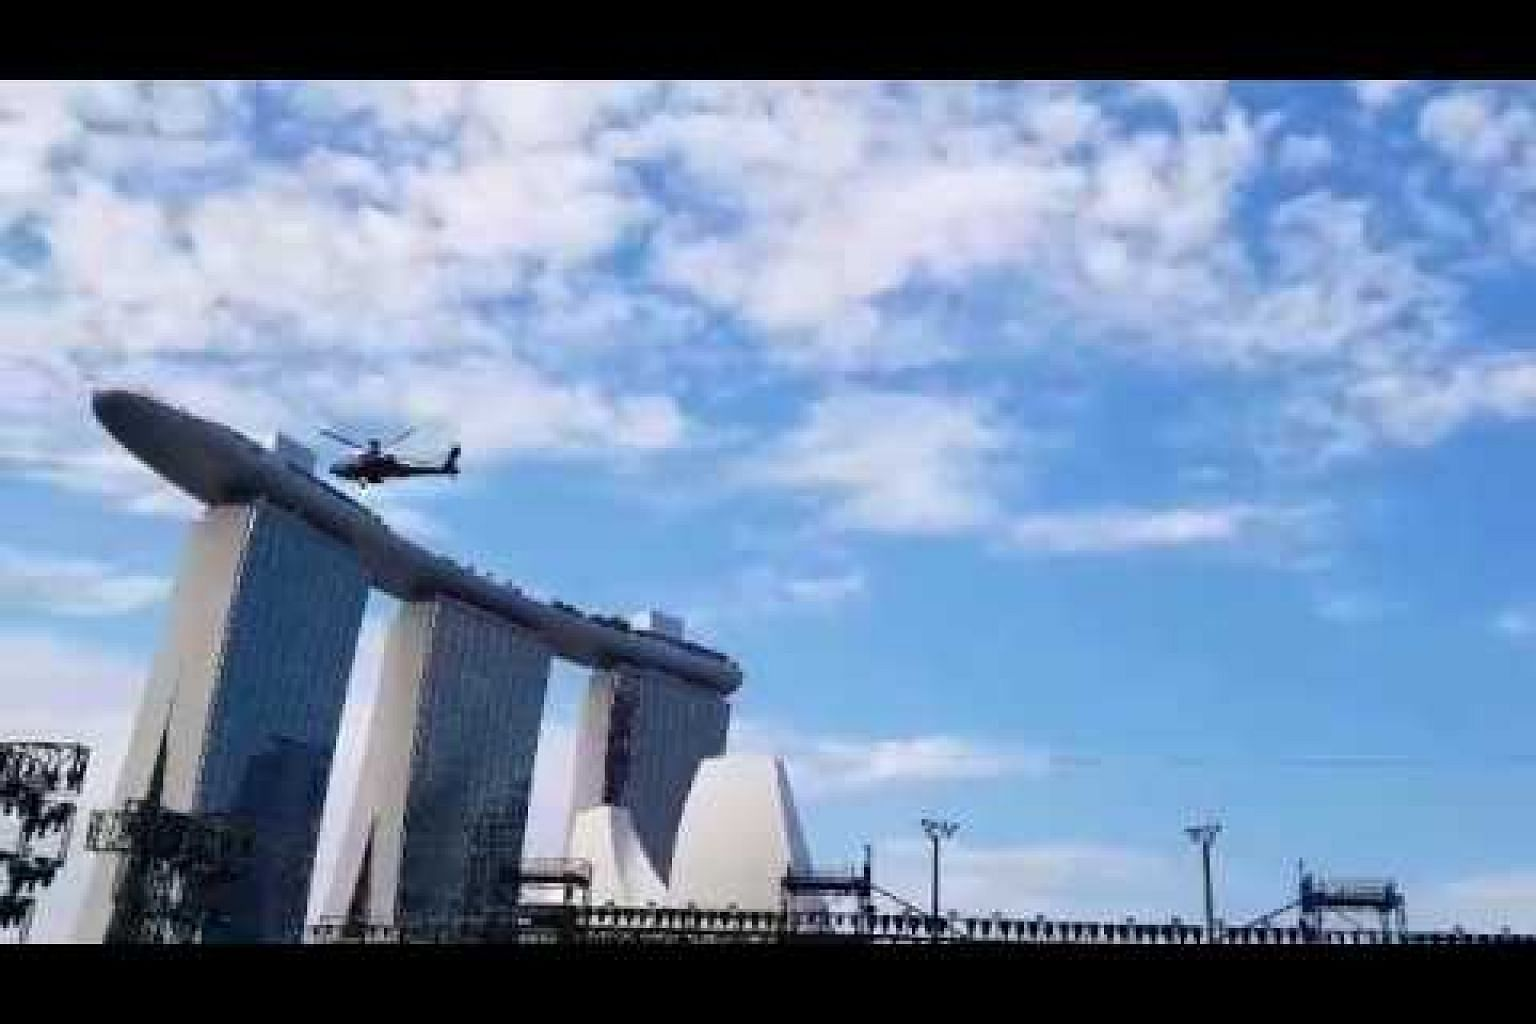 Apache helicopters doing a flyby at the Marina Bay Floating Platform